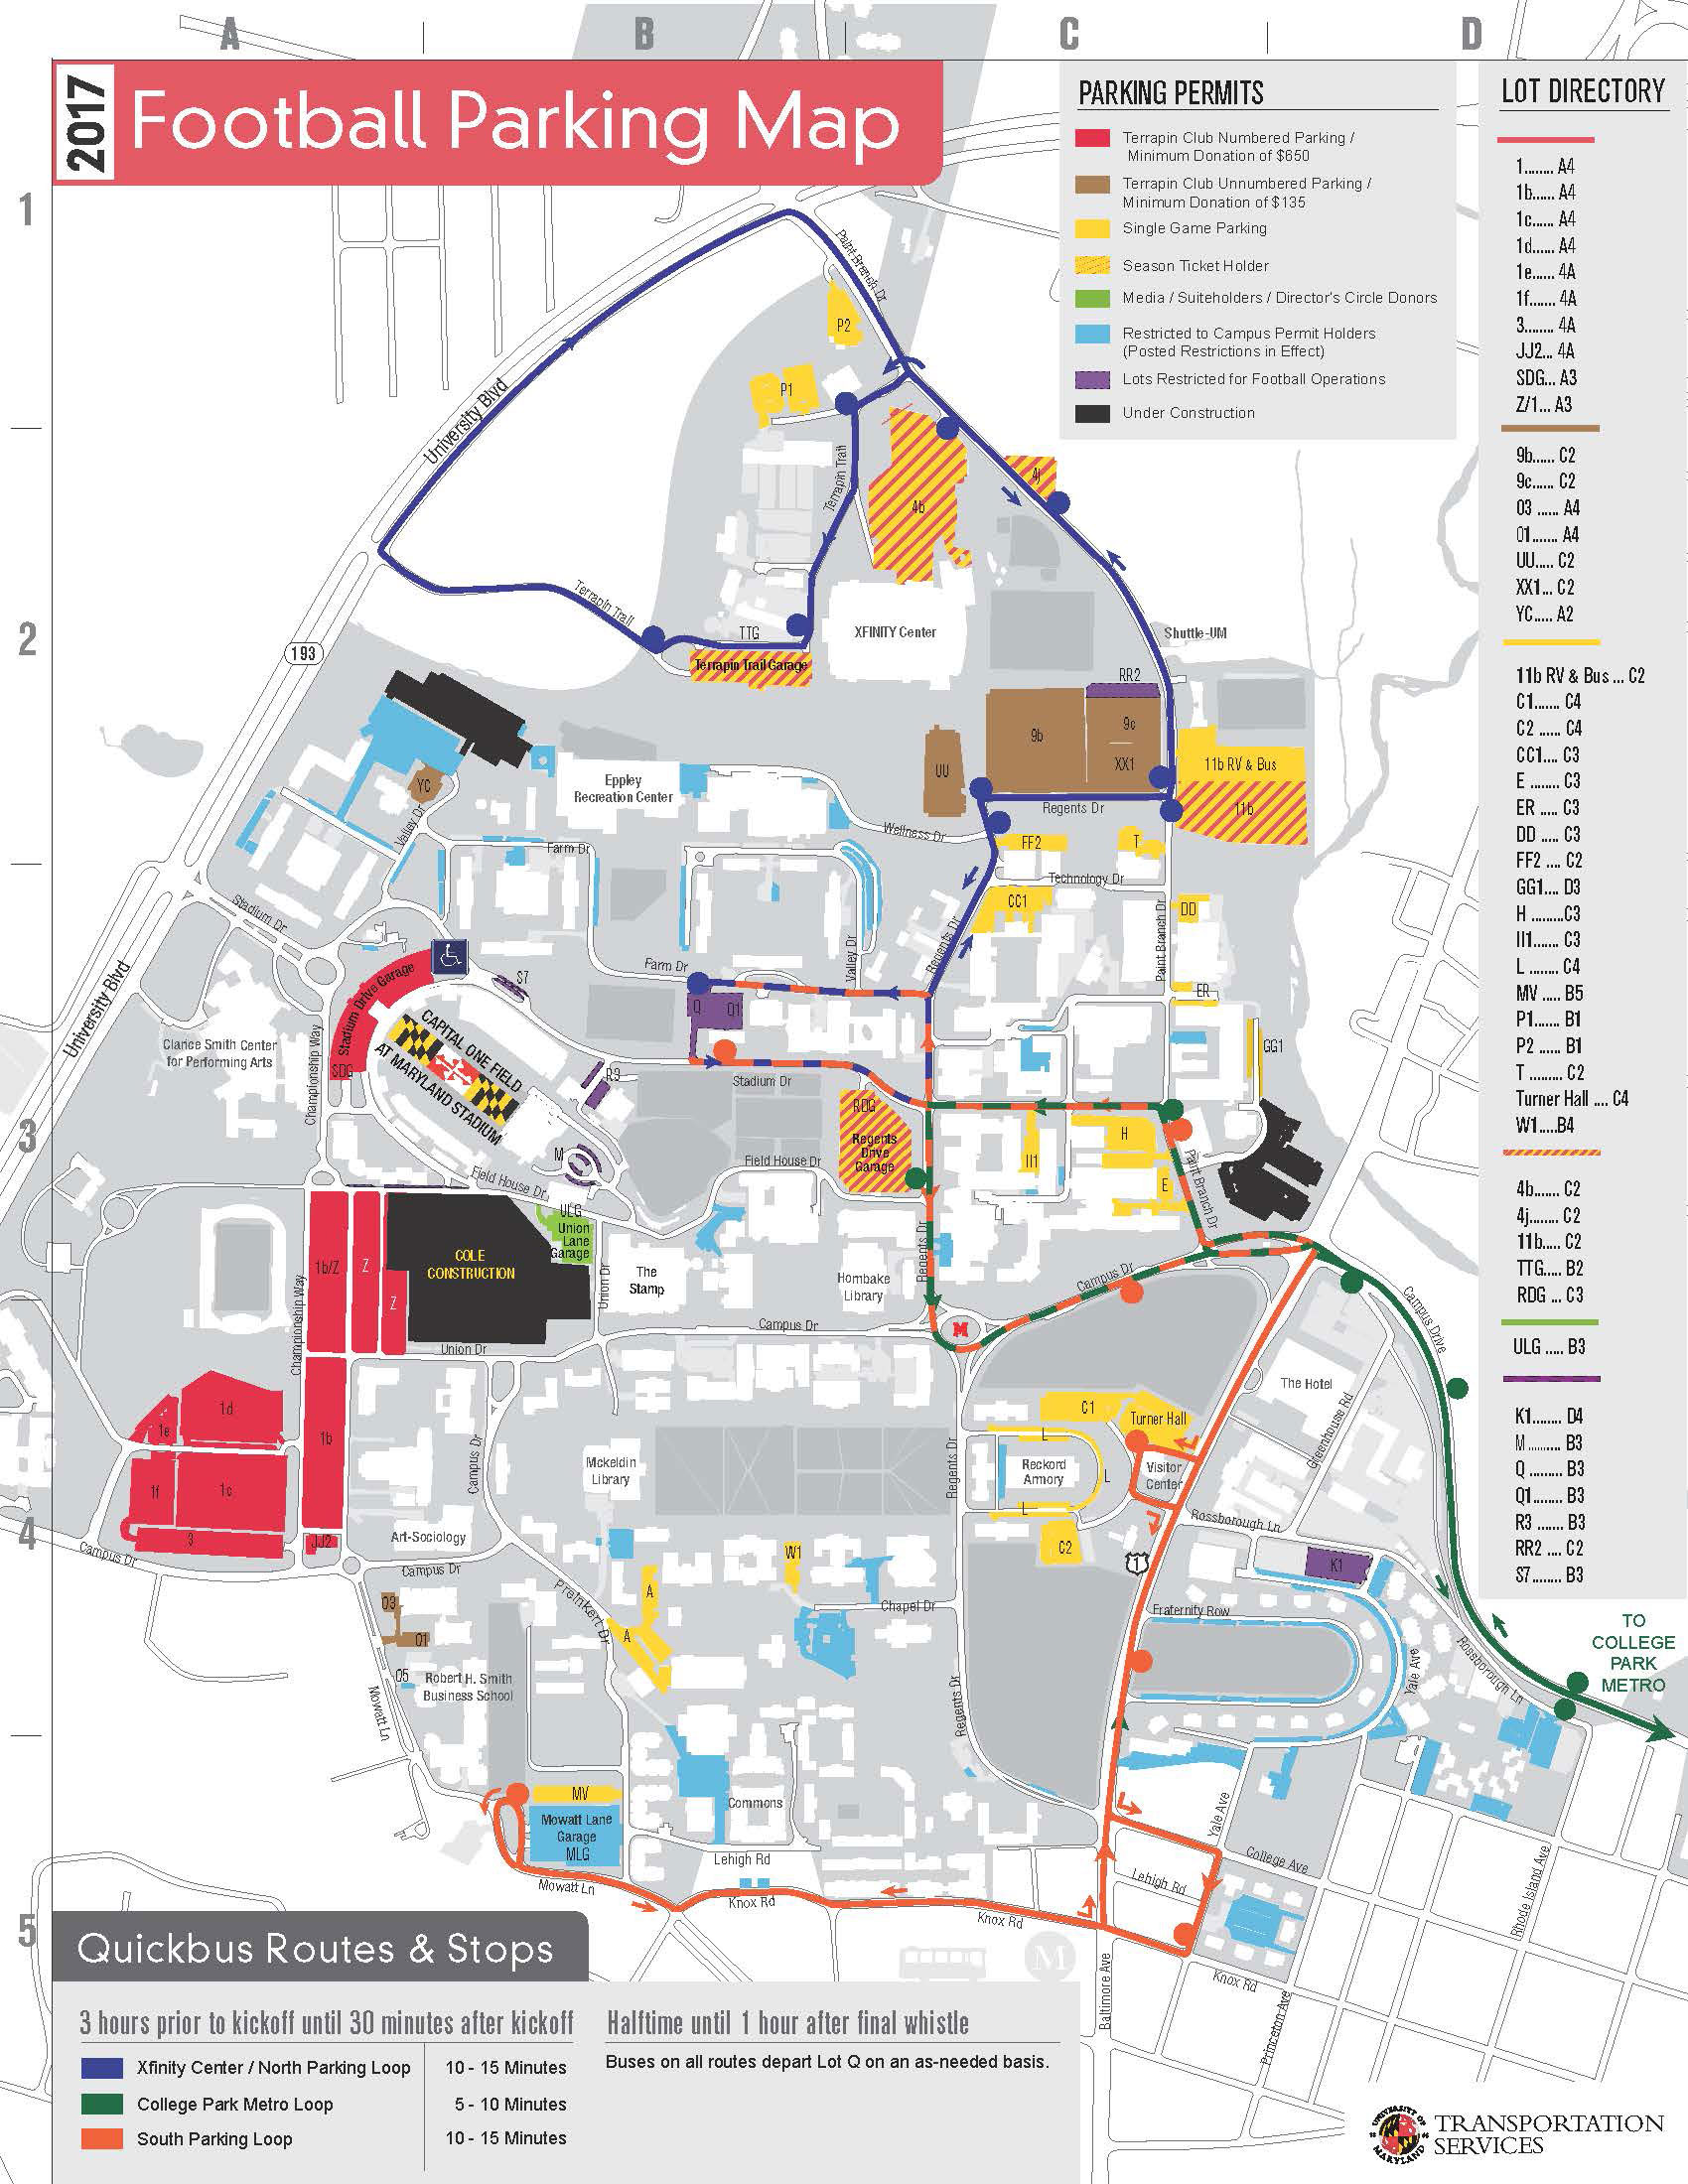 Tailgating Guide - University of Maryland Athletics on university of colorado hospital campus map, ksu campus map, plymouth state university parking map, columbus state community college parking map, kansas state fair parking map, ferris state university parking map, wayne state university parking map, truman state university parking map, kansas state university font, kansas state university mapquest, weber state university parking map, kansas state university stadium seating chart, michigan parking map, kumc hospital map, san jose state university parking map, foothill college parking map, kansas state university police, kansas state univerty map, kansas state university history, cleveland state university parking map,